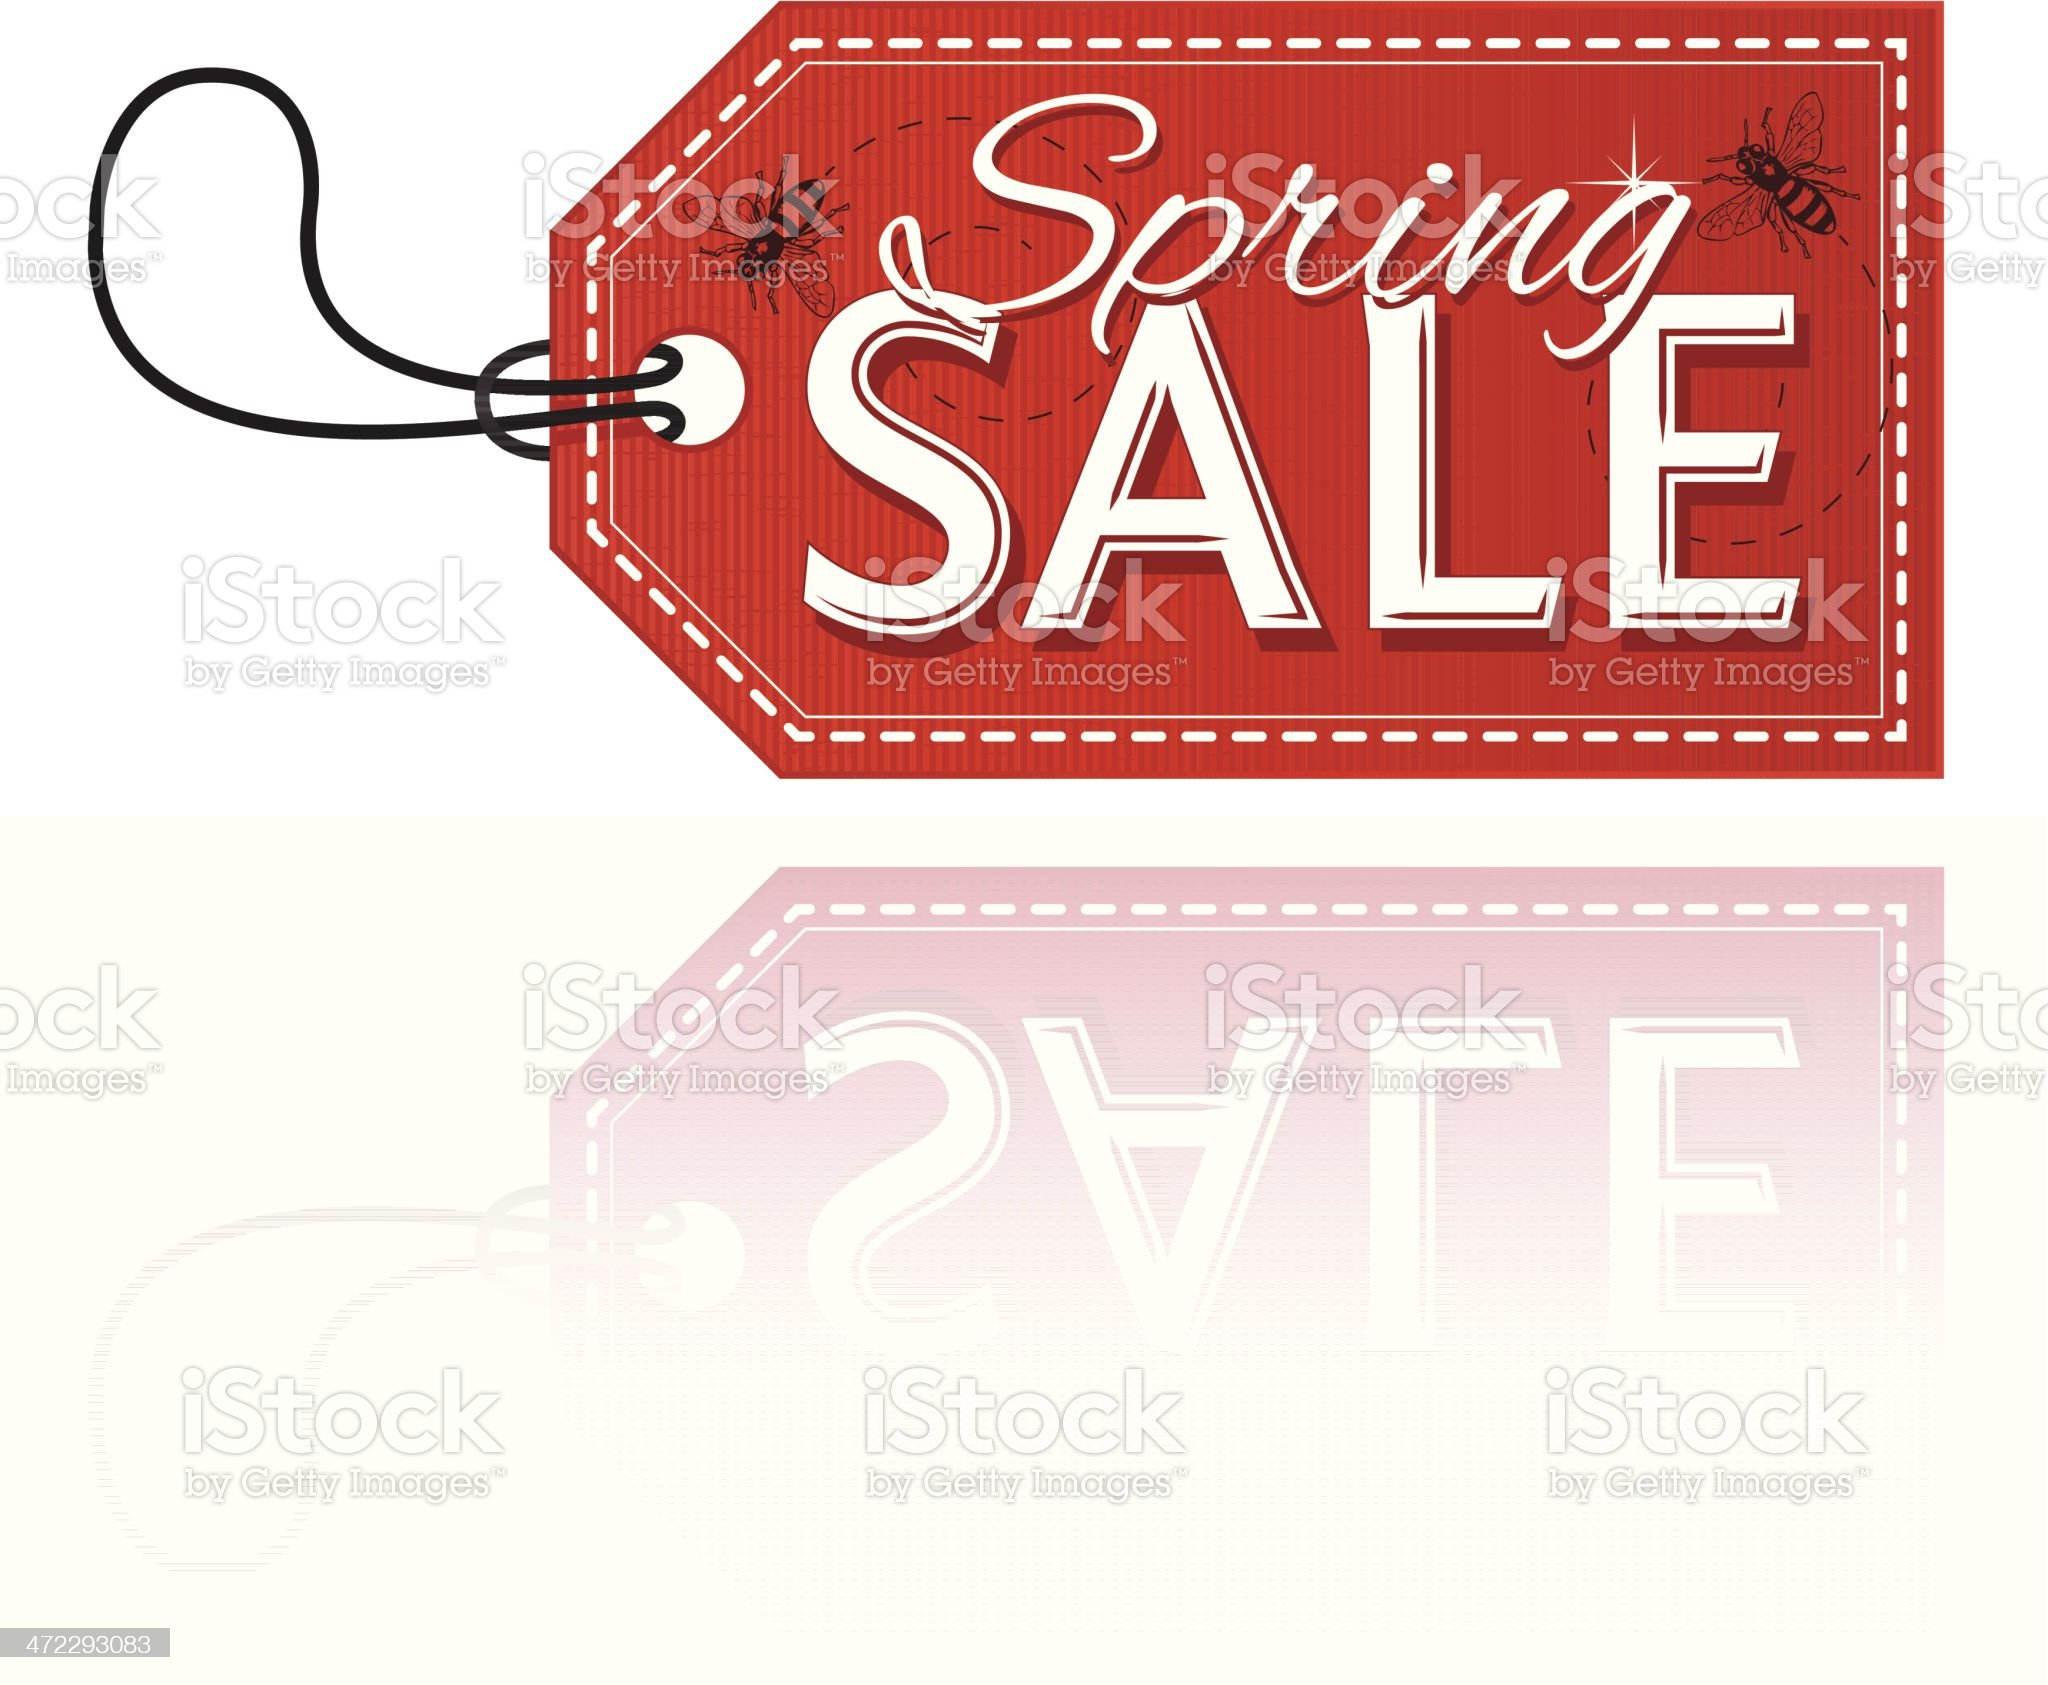 Spring sale royalty-free stock vector art